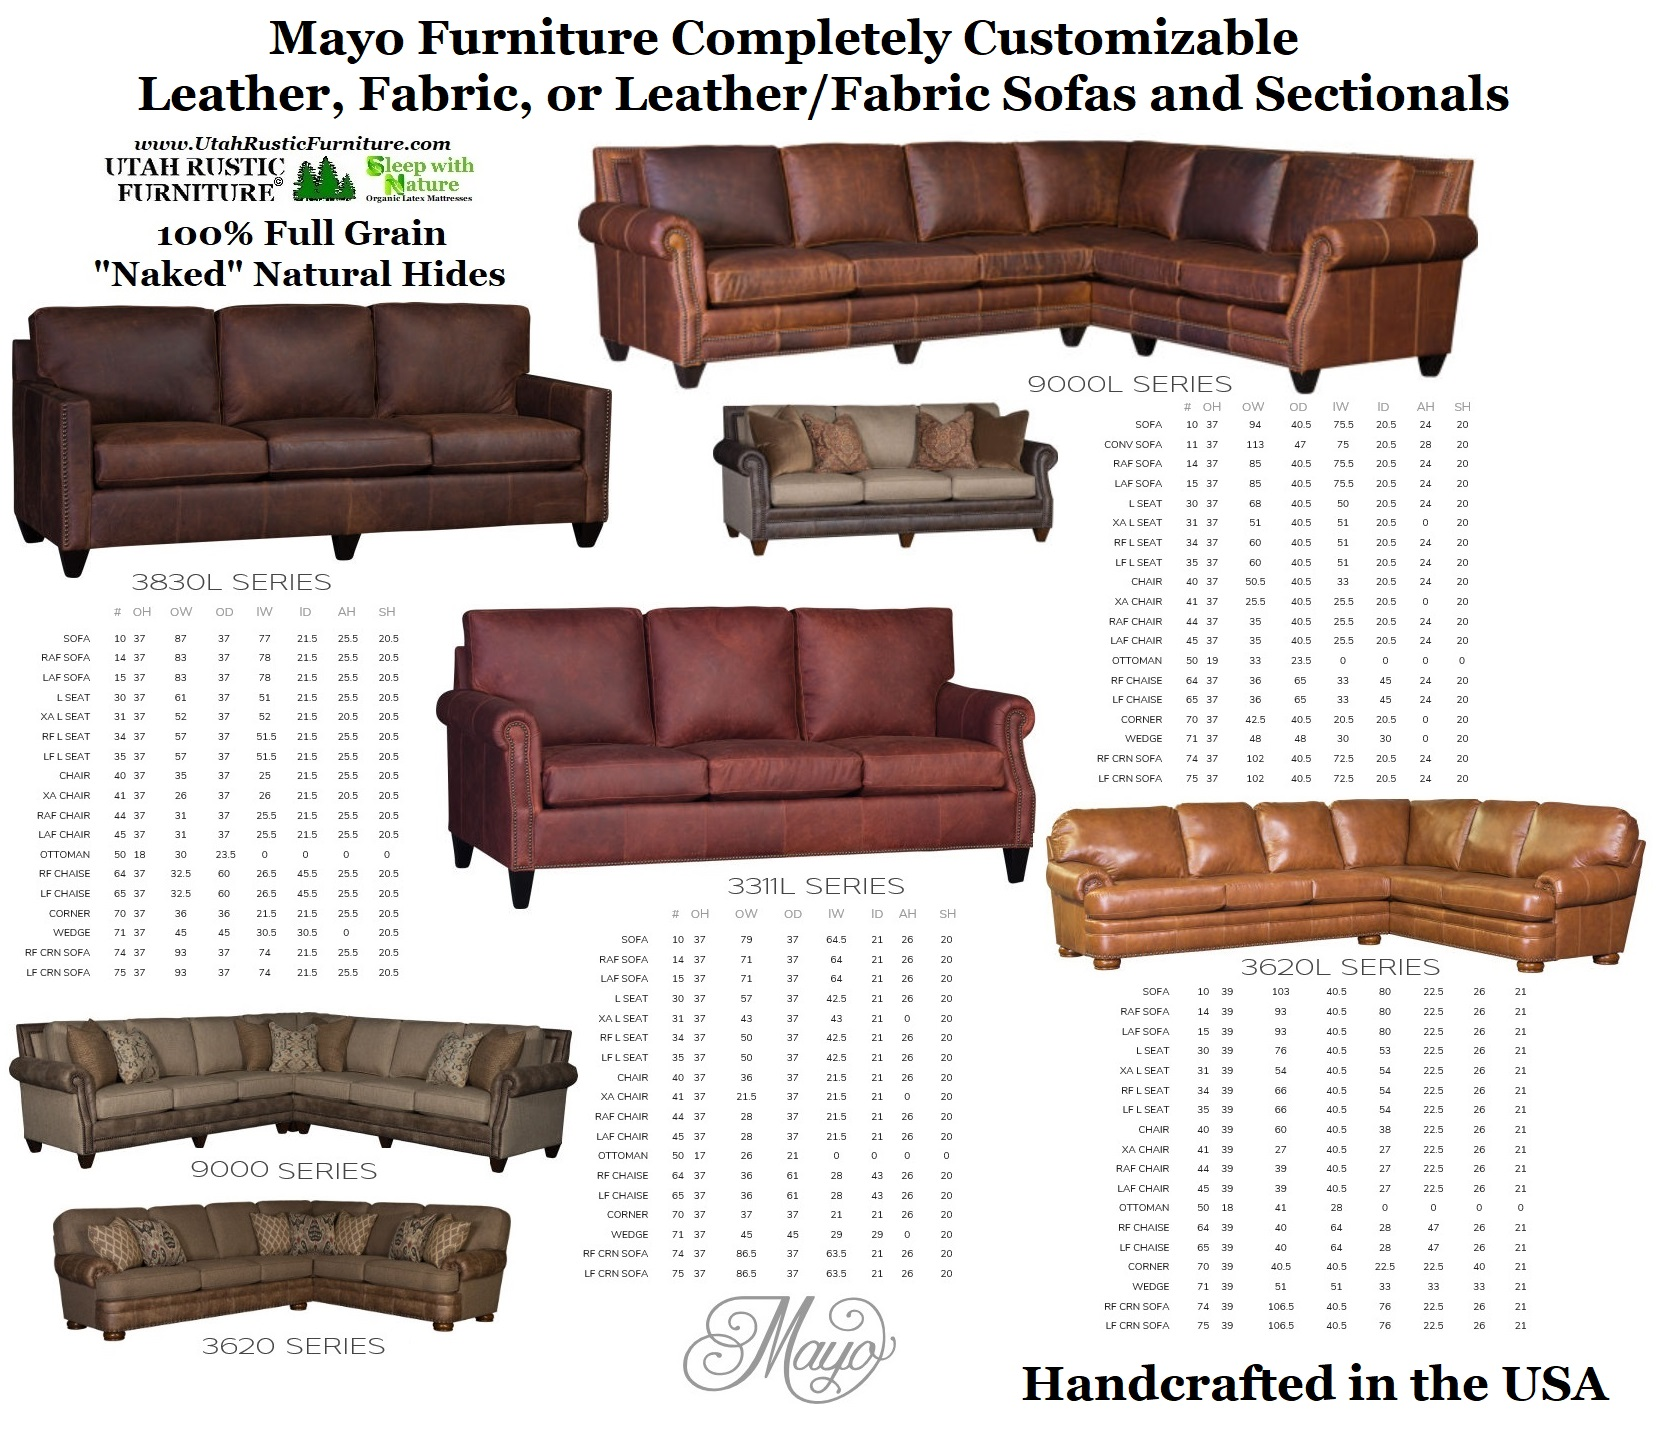 Bradley S Furniture Etc Mayo Leather And Fabric Sofas